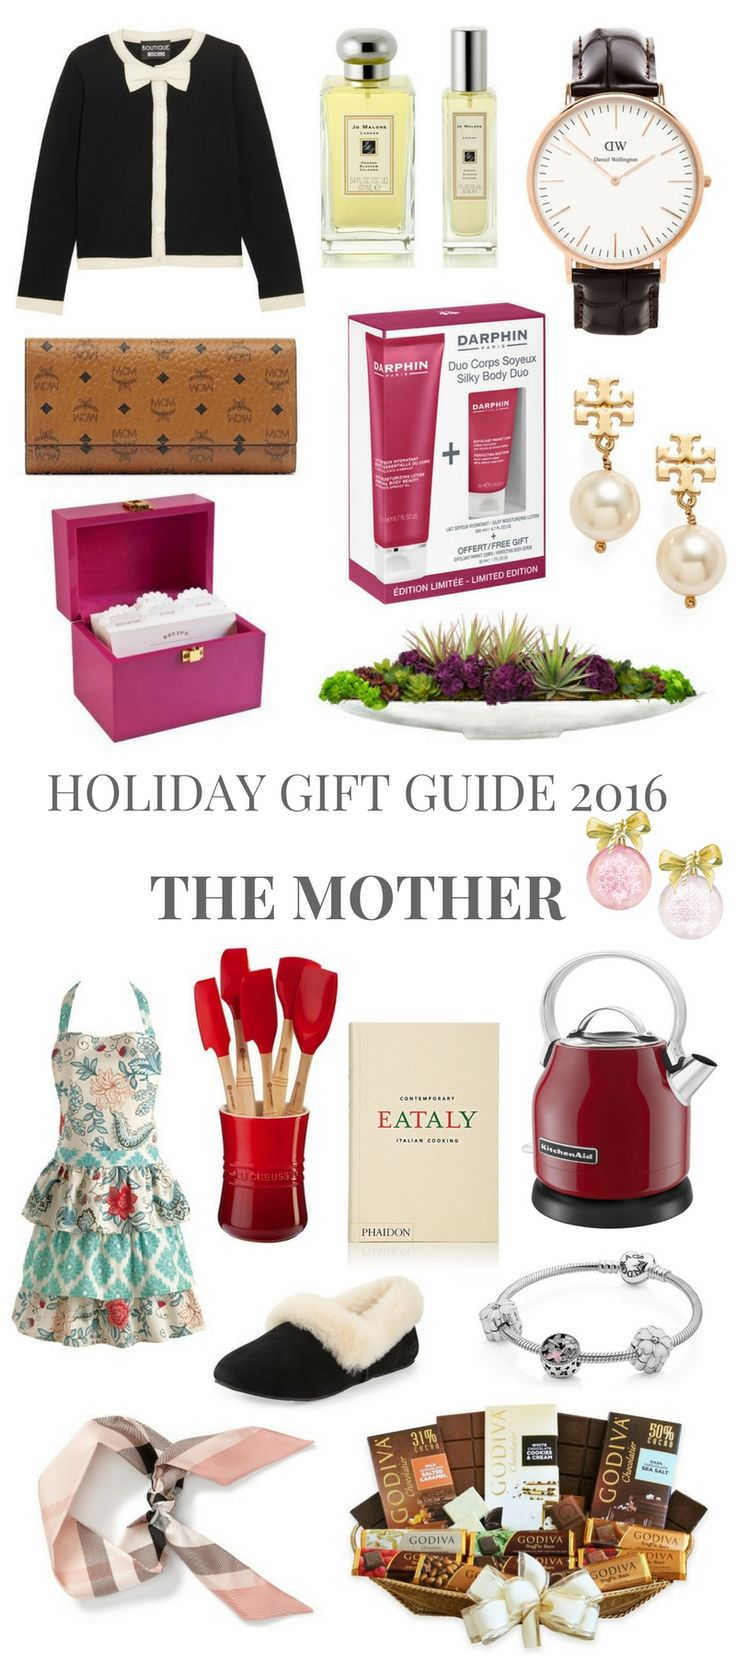 HOLIDAY GIFT GUIDE 2016 THE MOTHER // Shoegal Out In The World